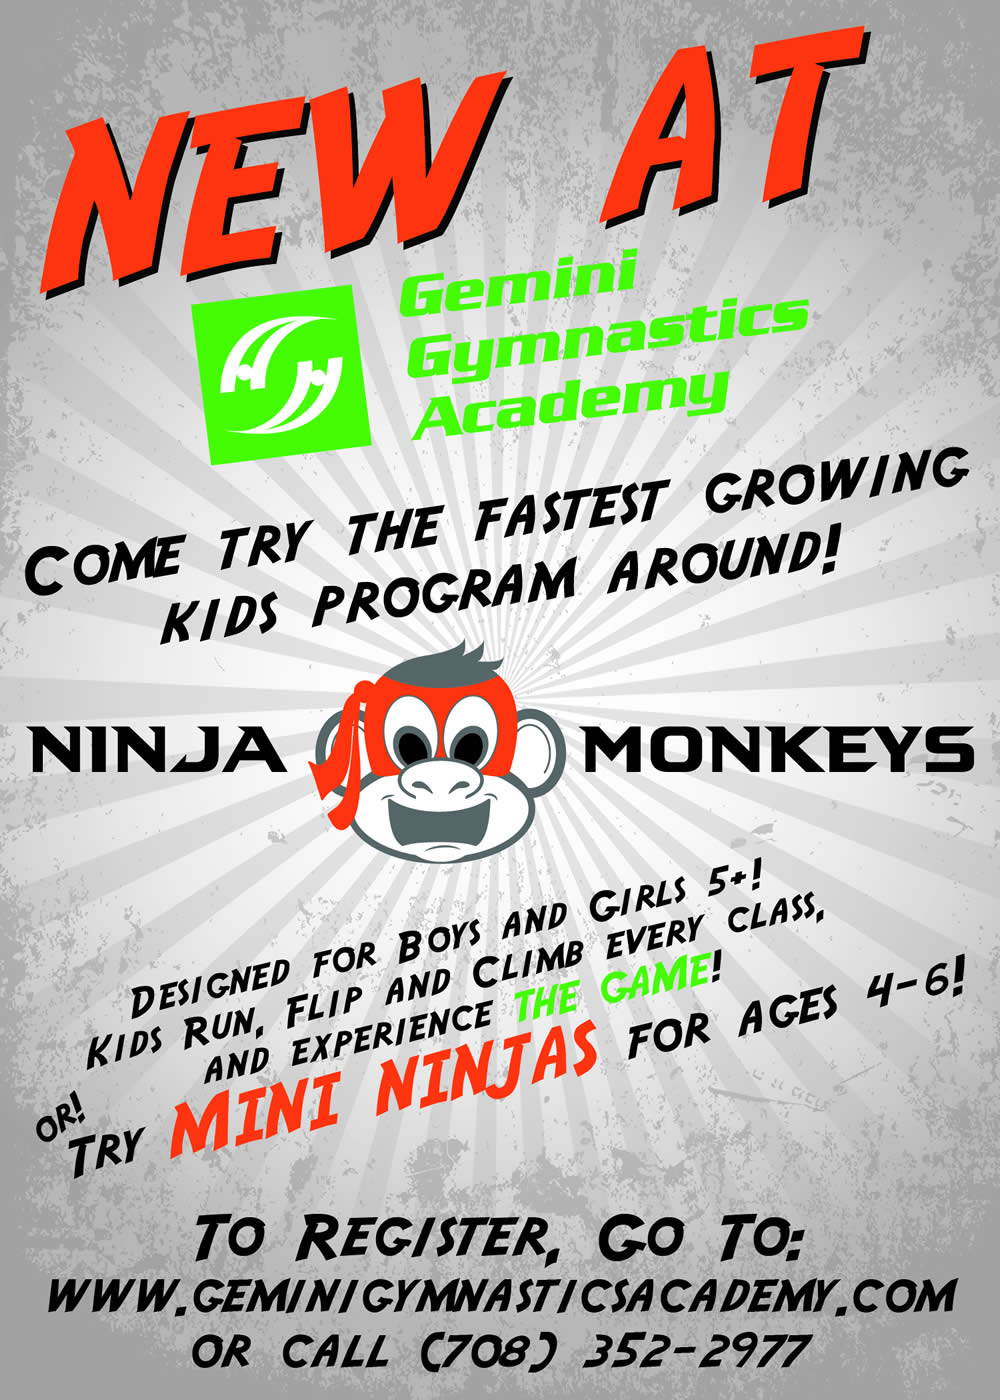 Gemini Ninja Monkeys Flyer_WEB READY-01_r2_c2